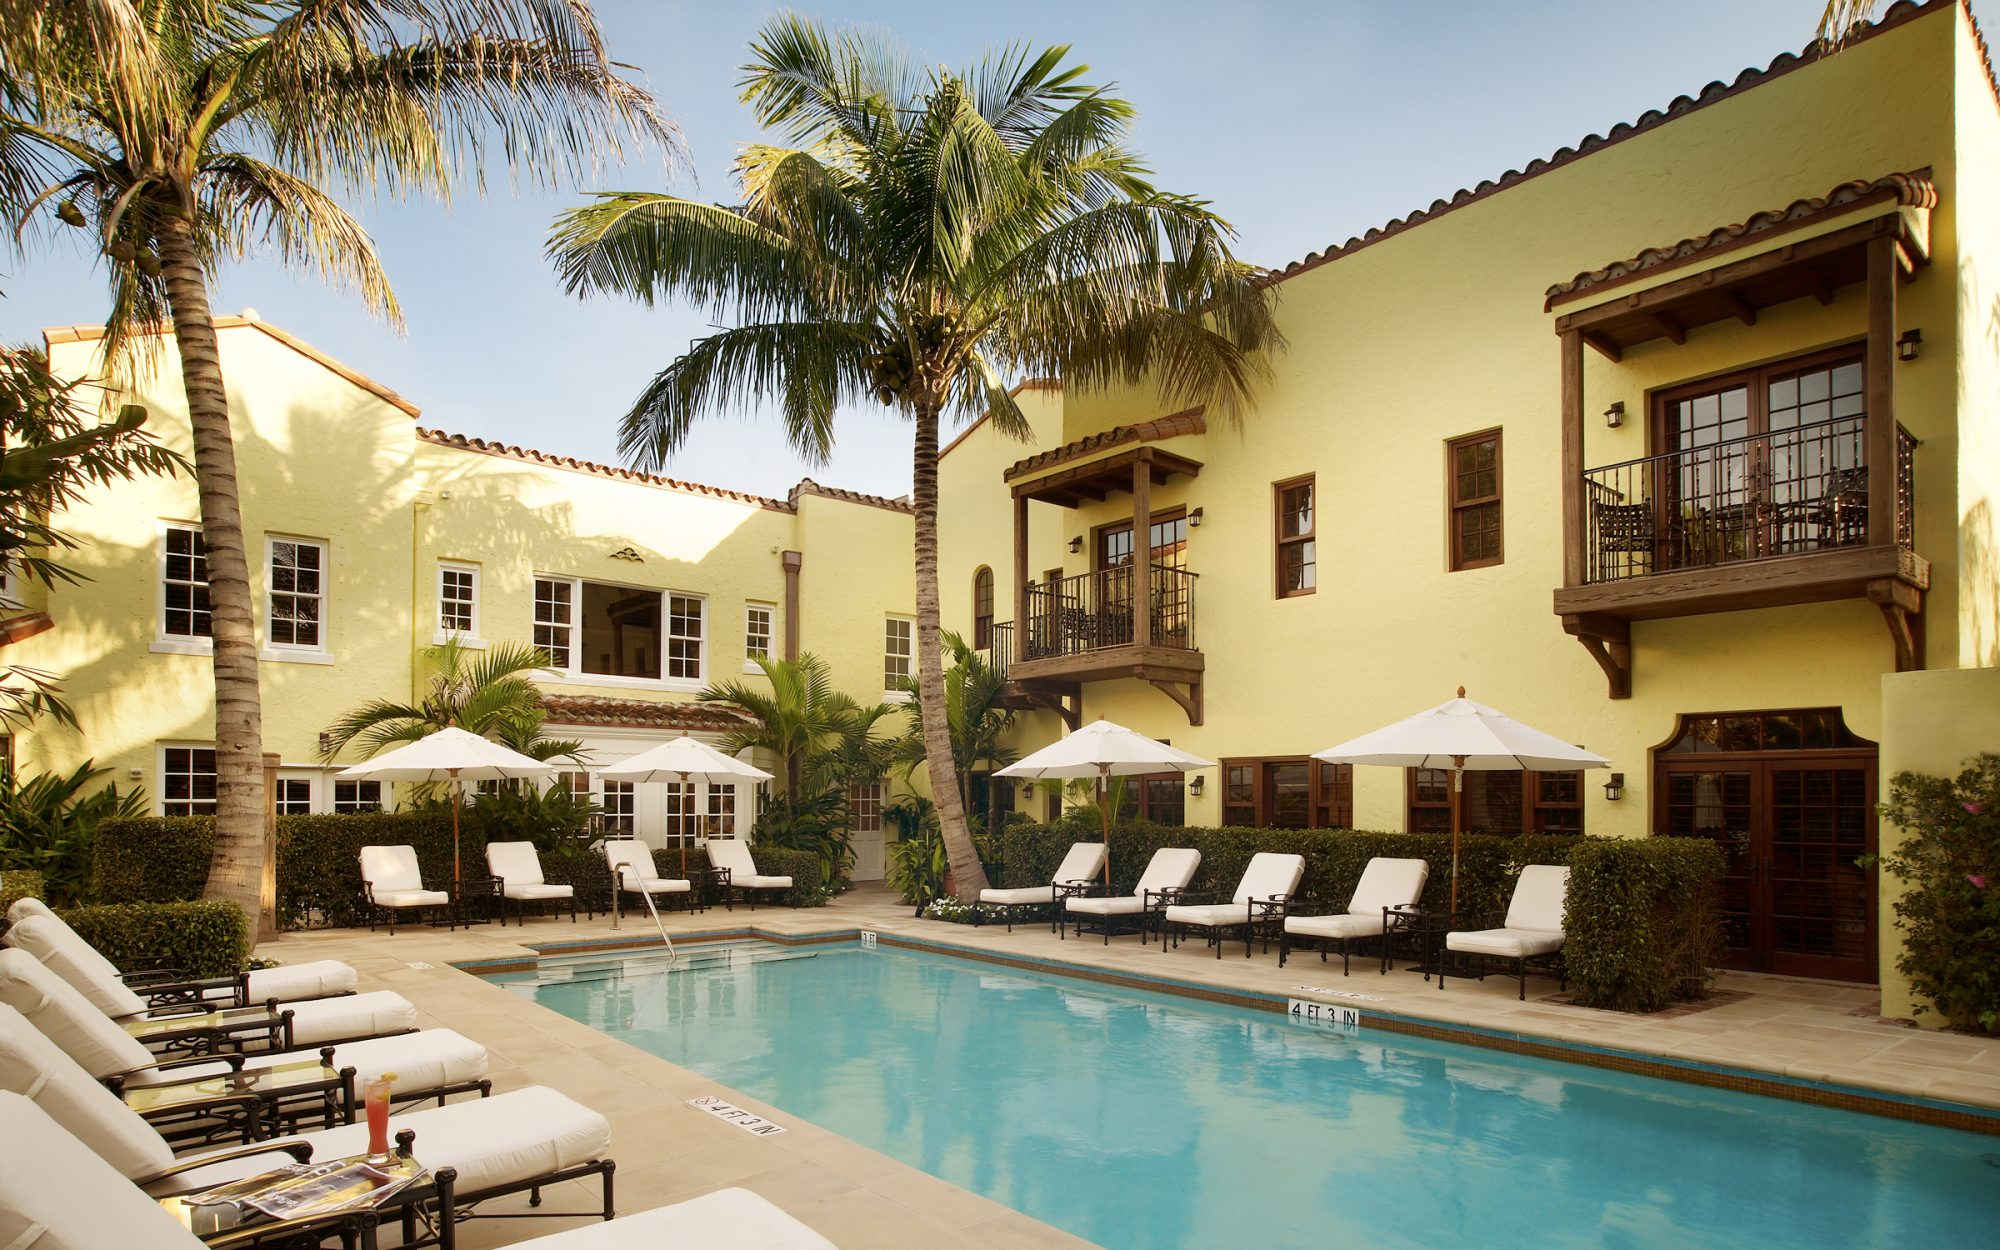 Brazilian Court Hotel, Palm Beach, Florida